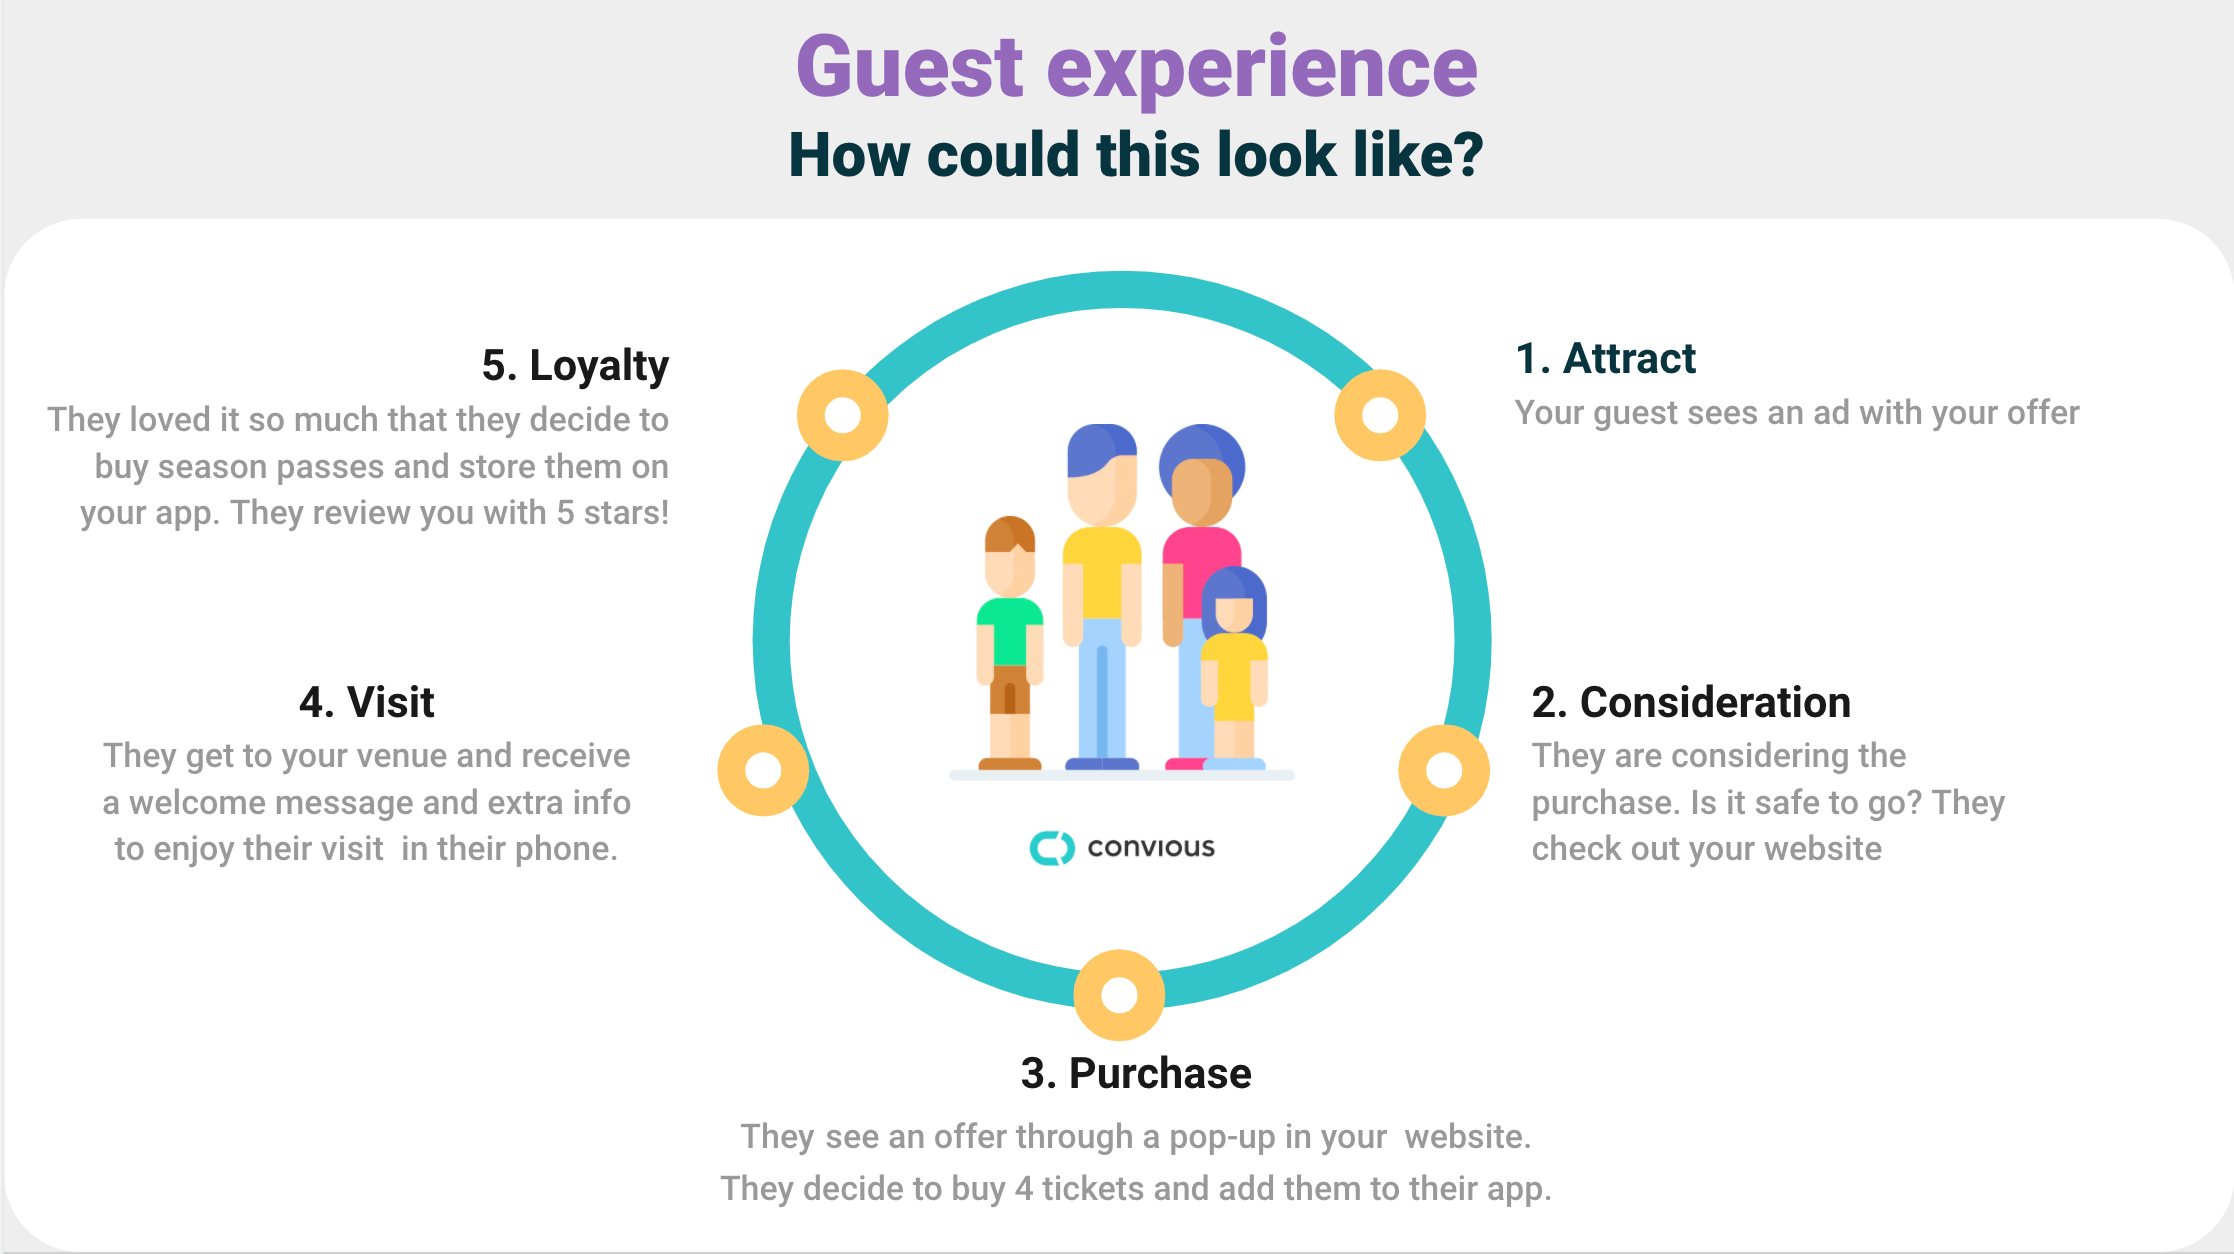 leisure guest experience for a circular customer journey